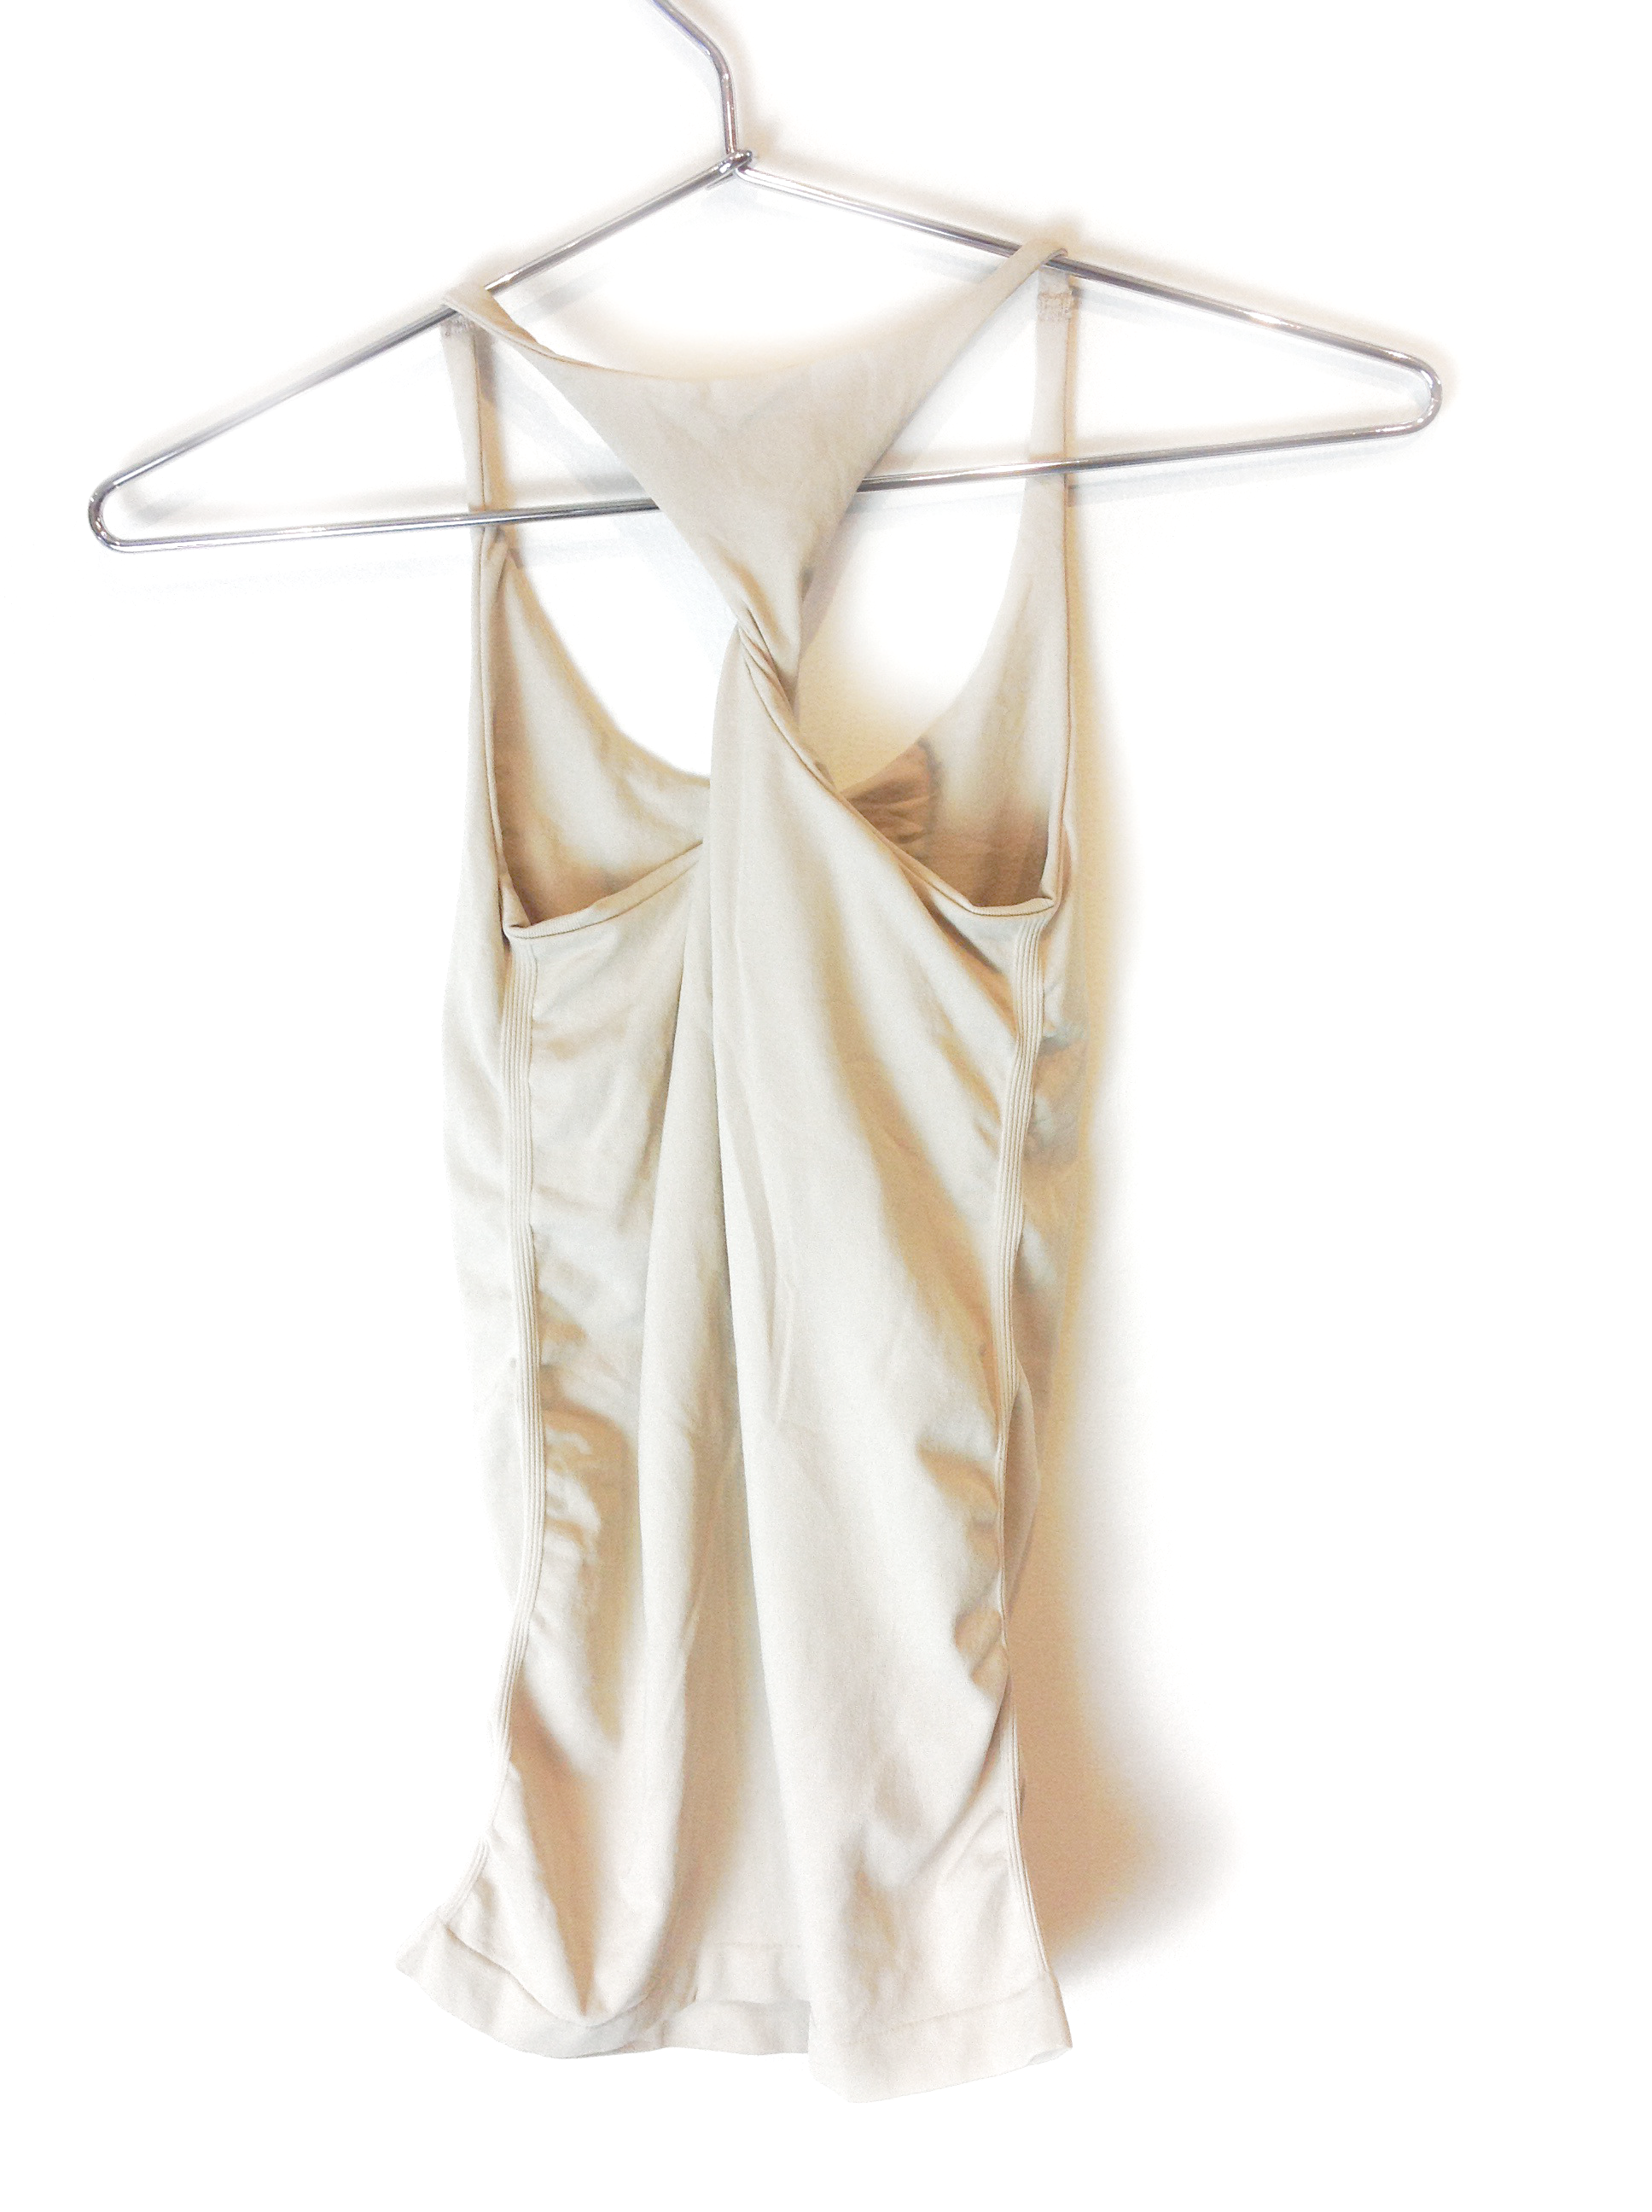 New-Bebe-Womens-Seamless-Knotted-Racerback-Tank-Top-Layering-Cami-Beige-24 thumbnail 3